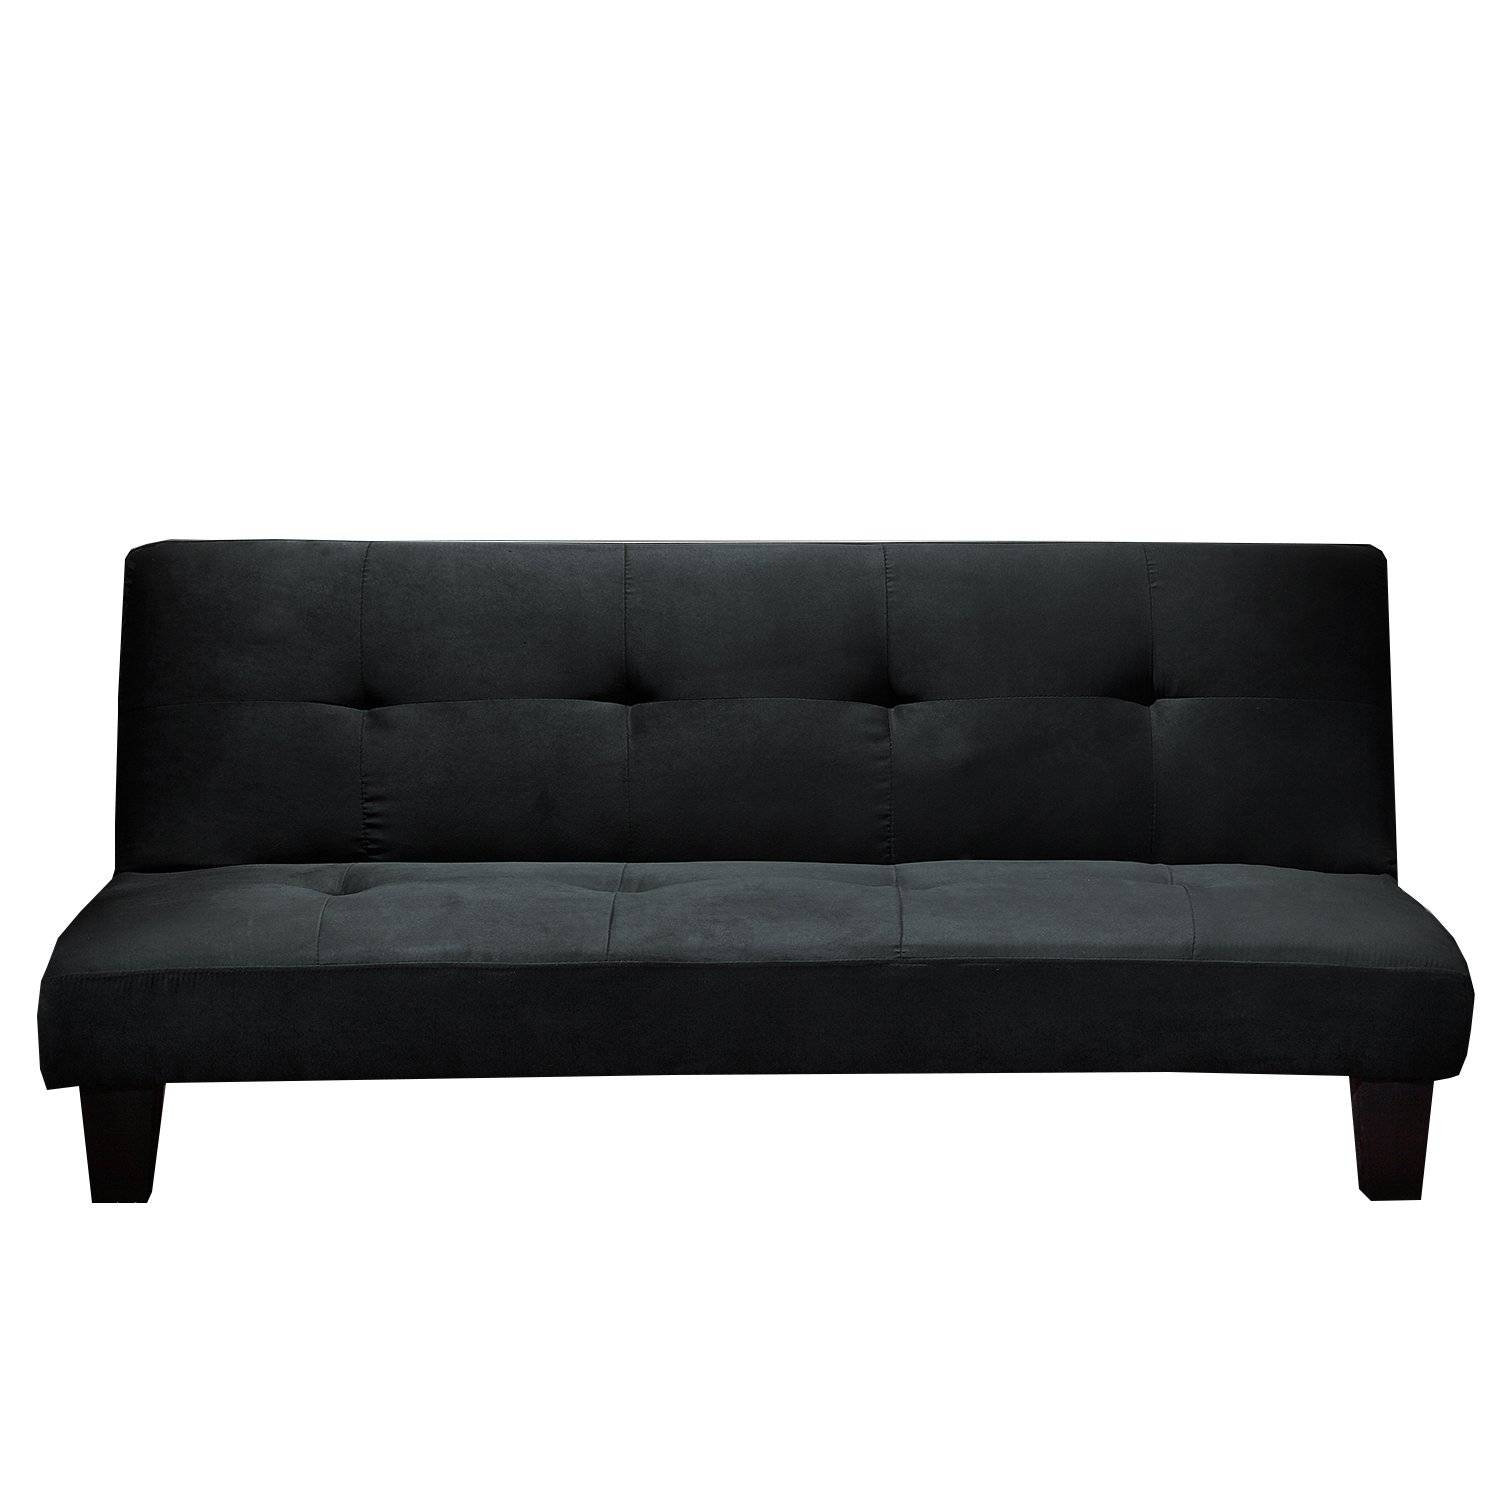 Living Room: Ava Velvet Tufted Sleeper Sofa | Contemporary Futon with Ava Velvet Tufted Sleeper Sofas (Image 11 of 15)